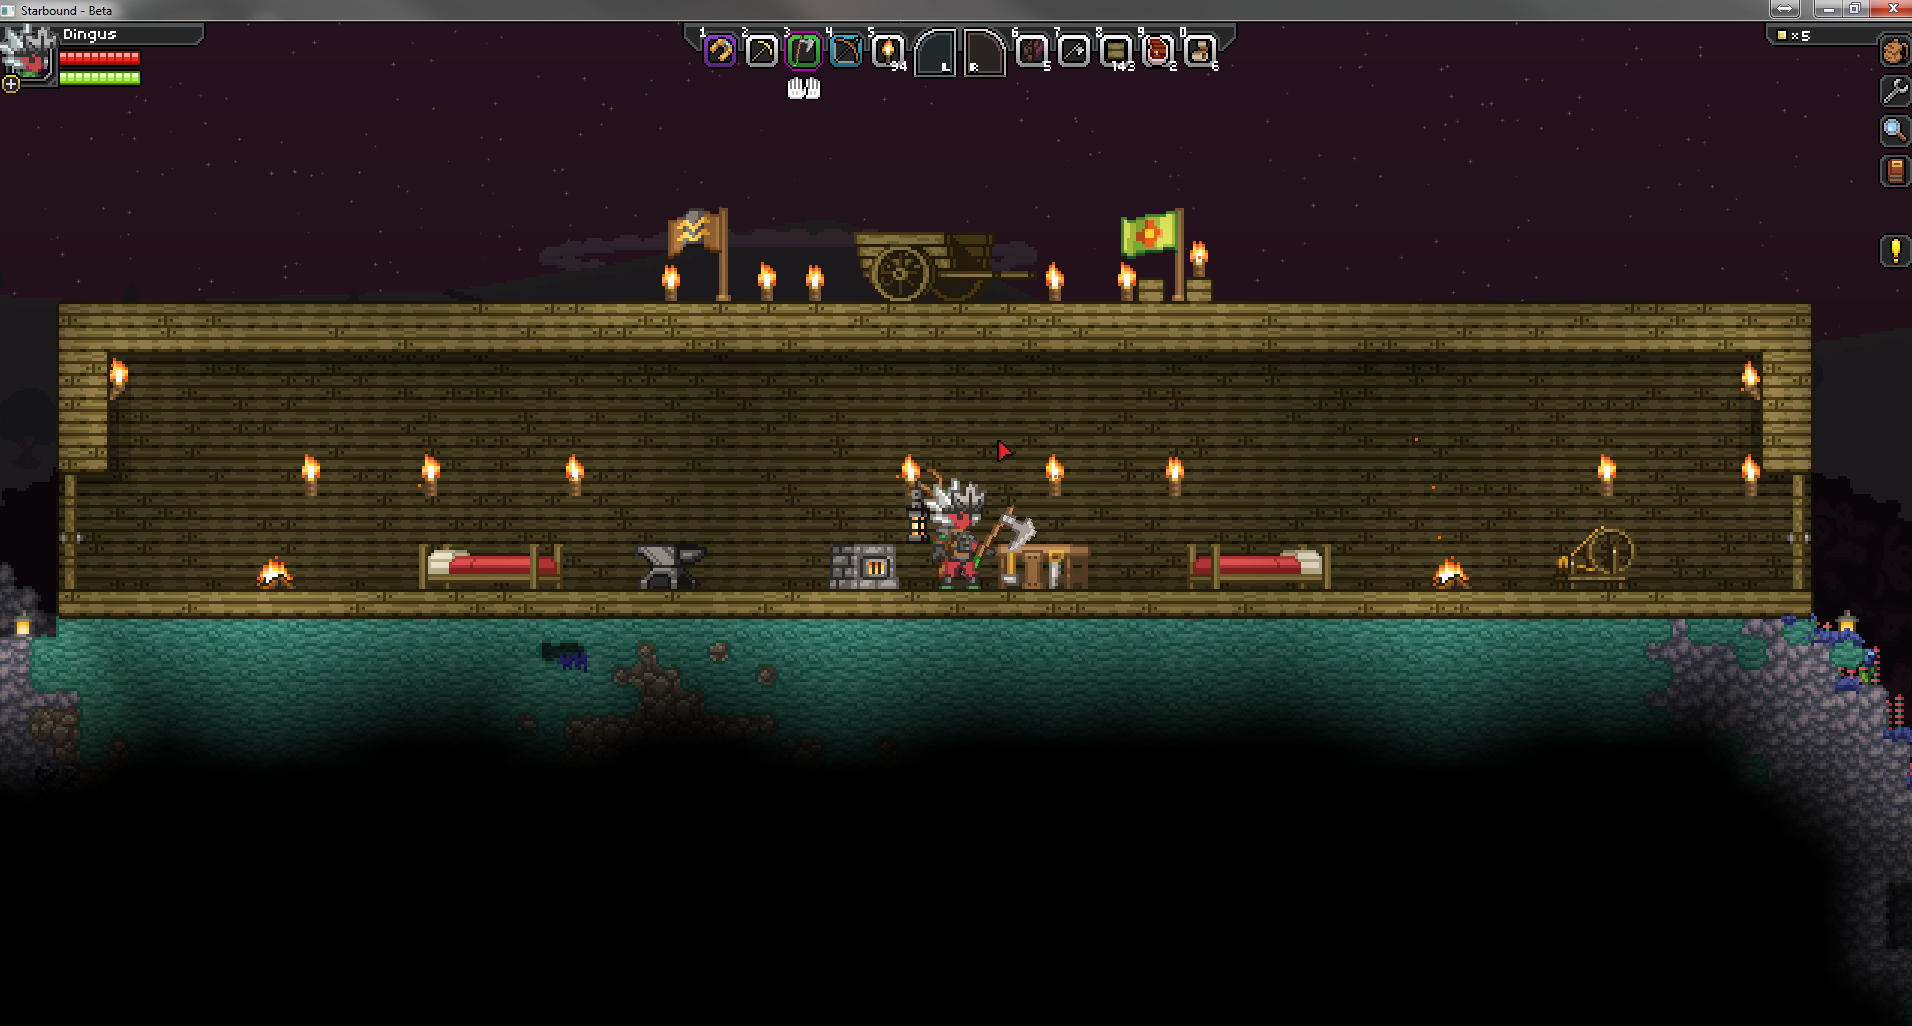 The Starbound Server is BACK